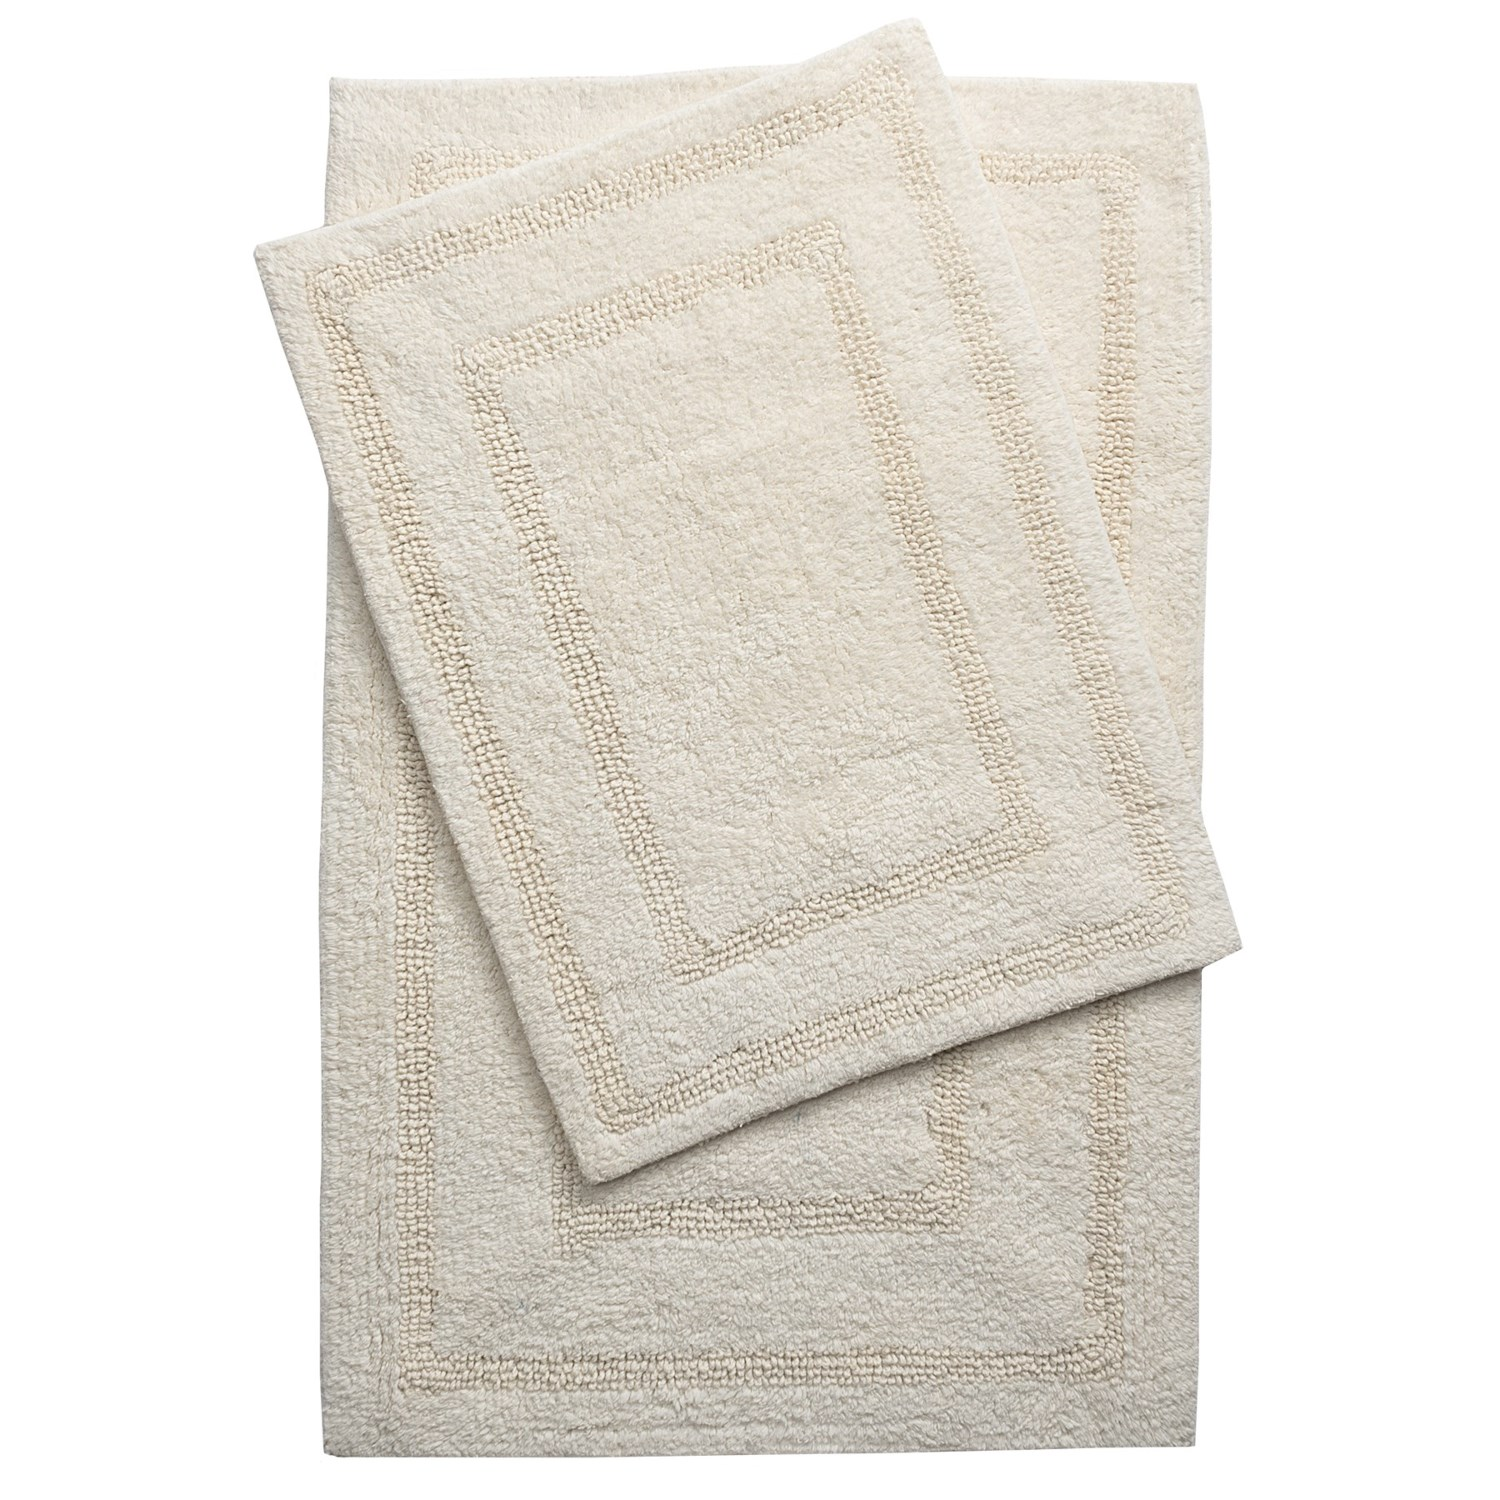 Vista home grand hotel collection tranquil cotton bath rug 21x34 17x24 reversible save 41 for Hotel collection bathroom rugs